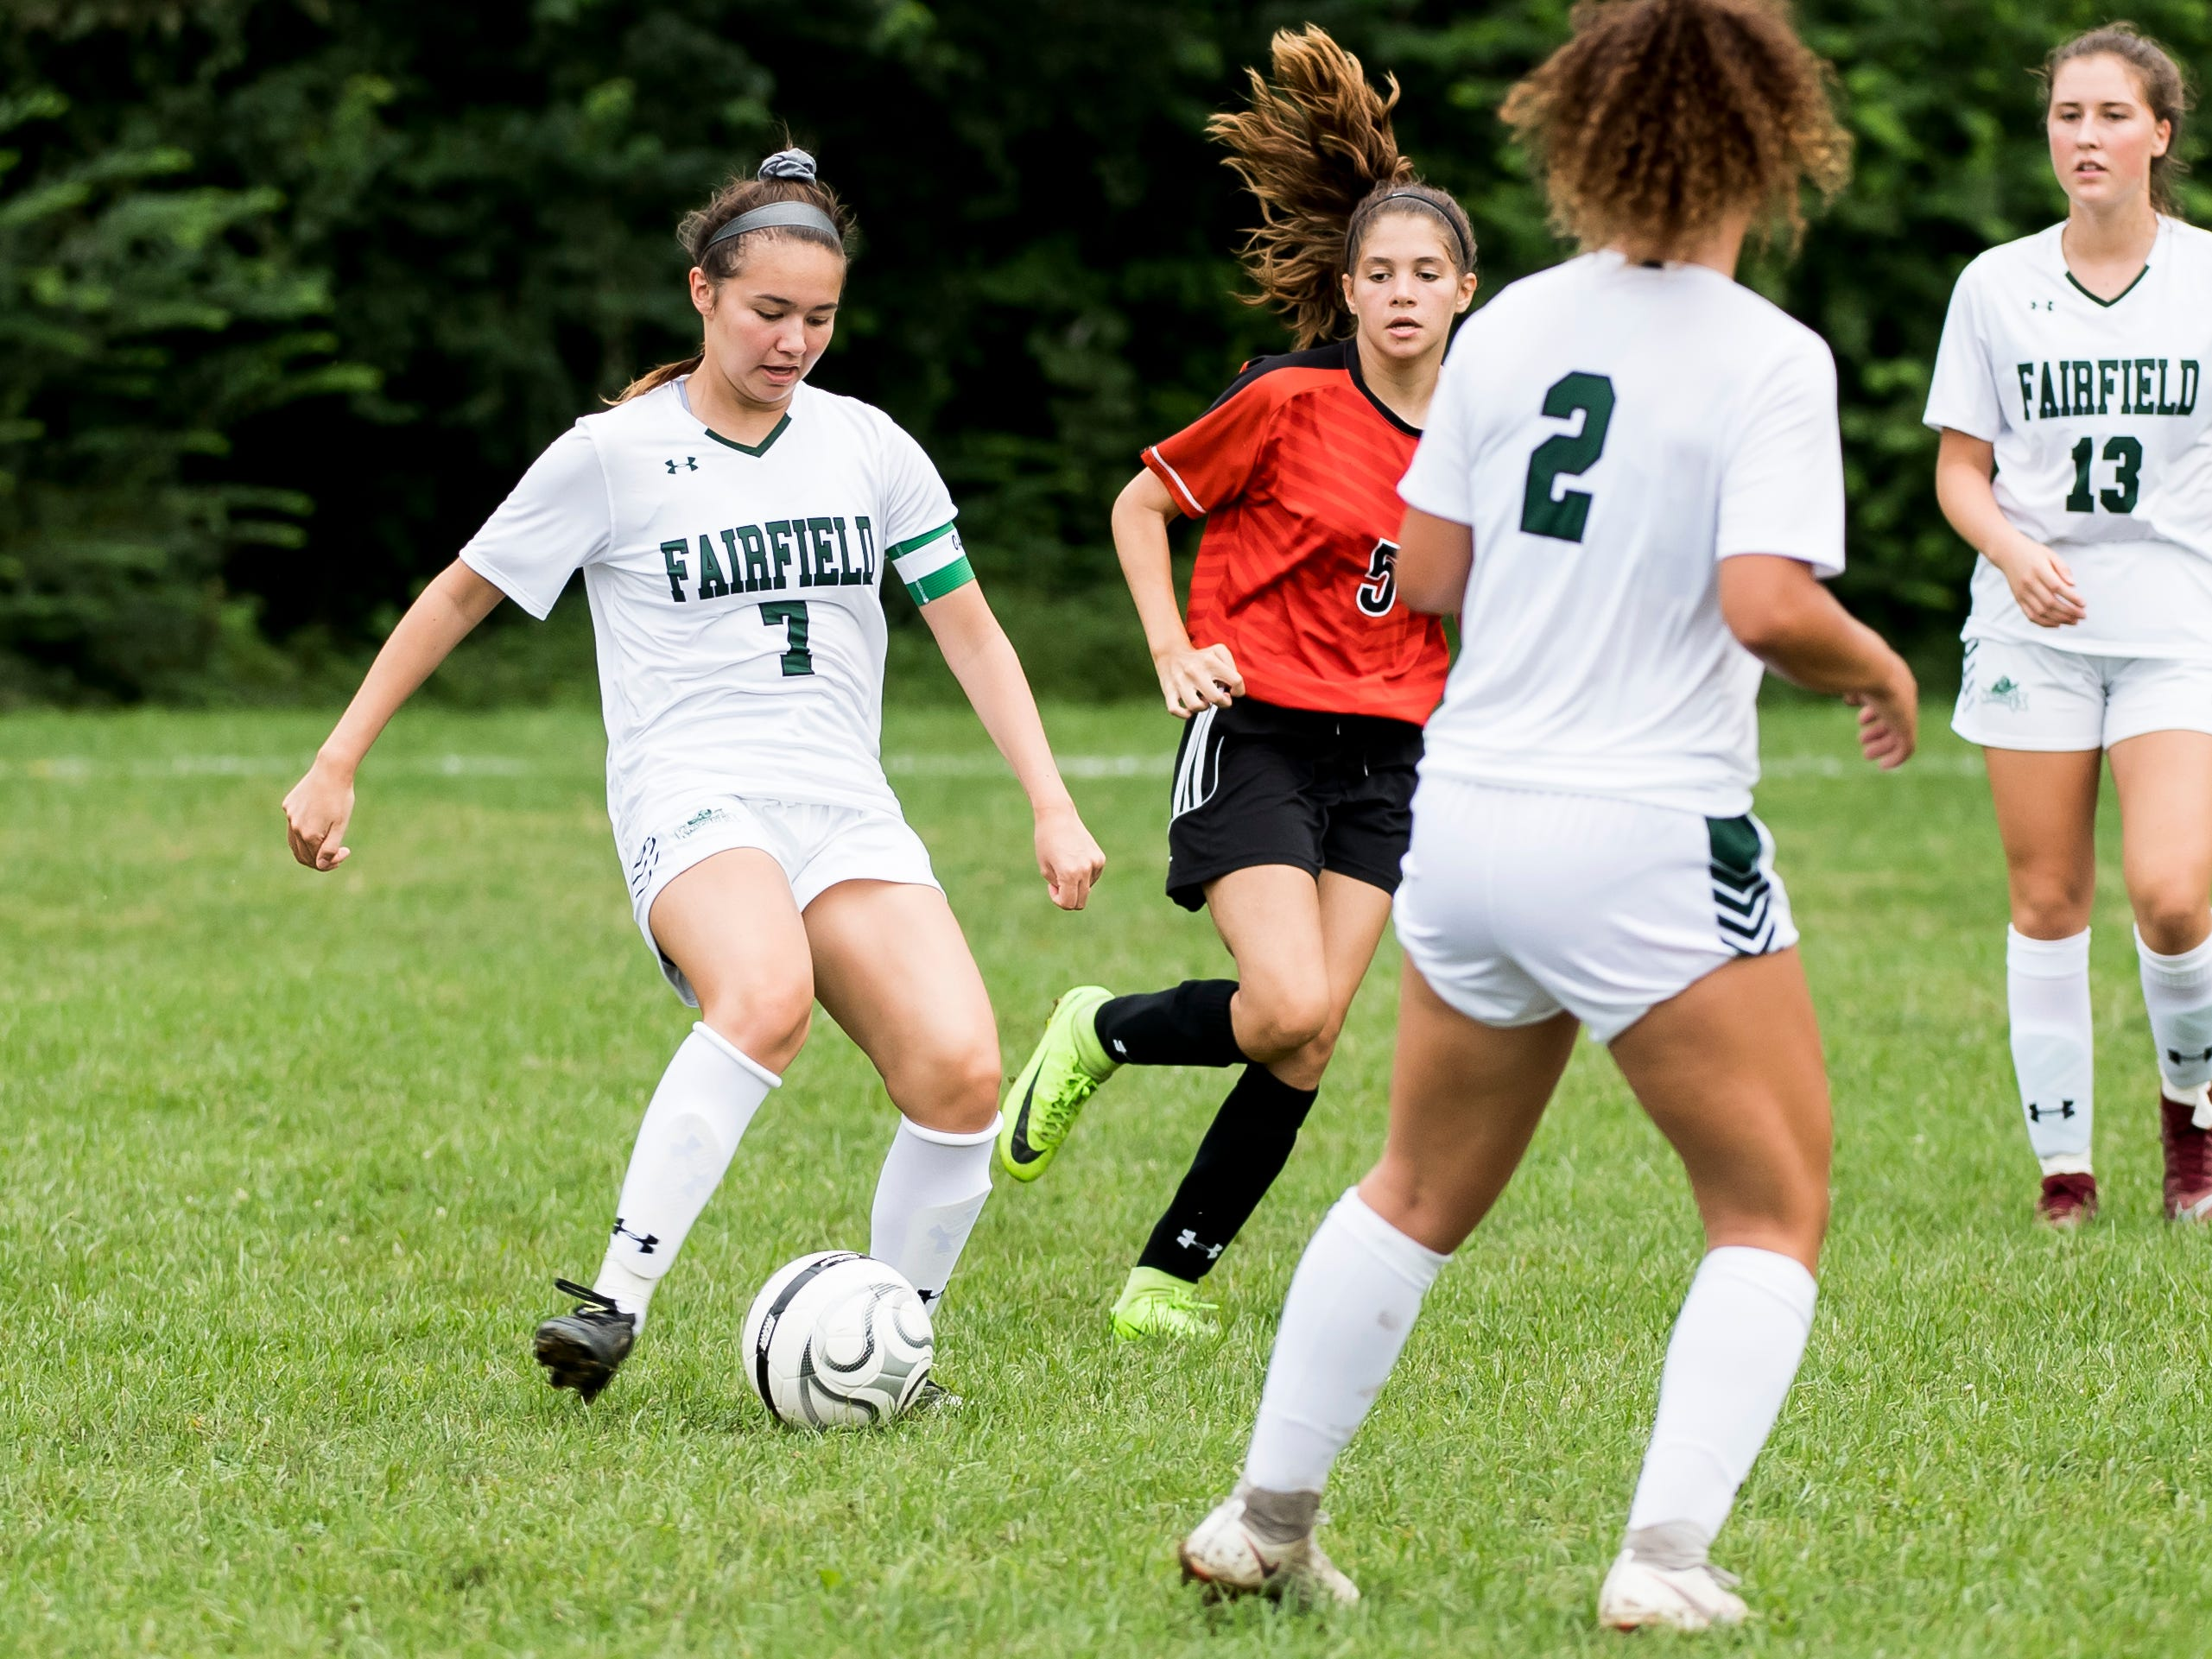 Fairfield's Maya Callenbach (7) looks to pass the ball during play against Hanover on Thursday, September 13, 2018.